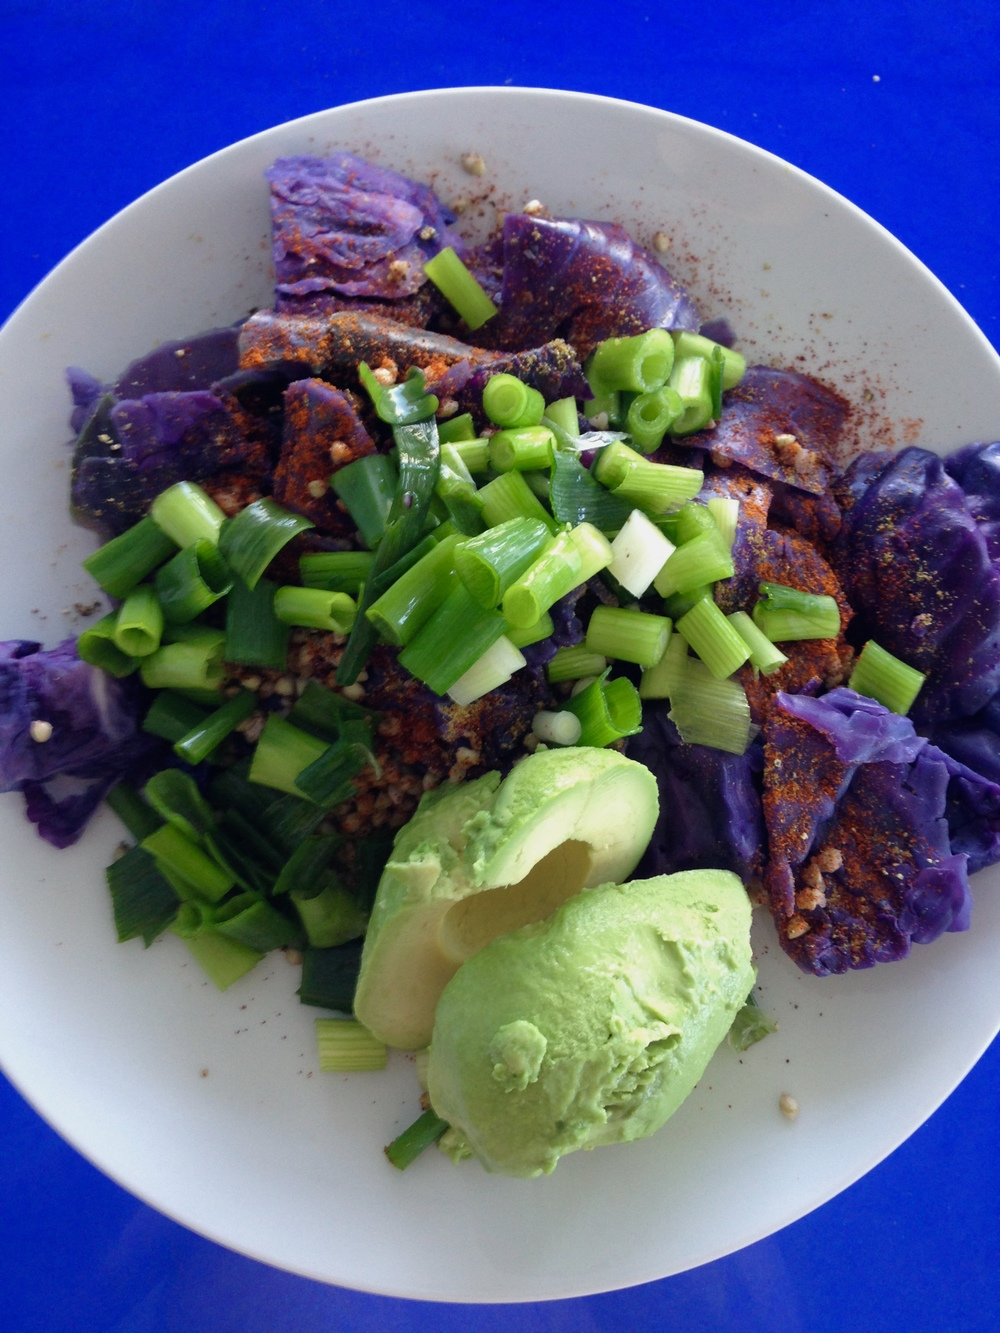 Steamed red cabbage with chopped scallions, avocado, kasha, and spices.